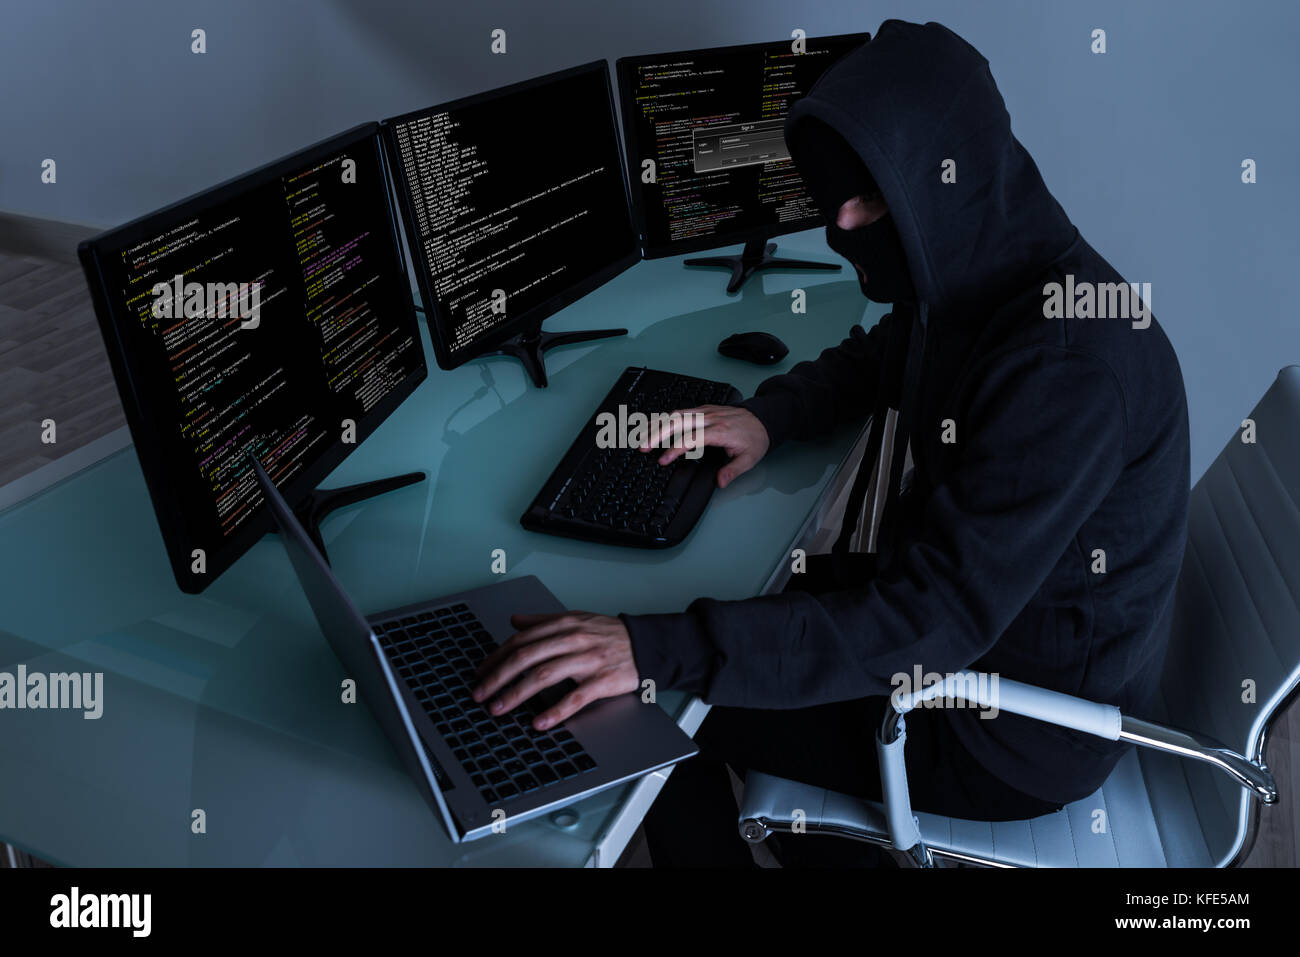 Computer hacking and software piracy